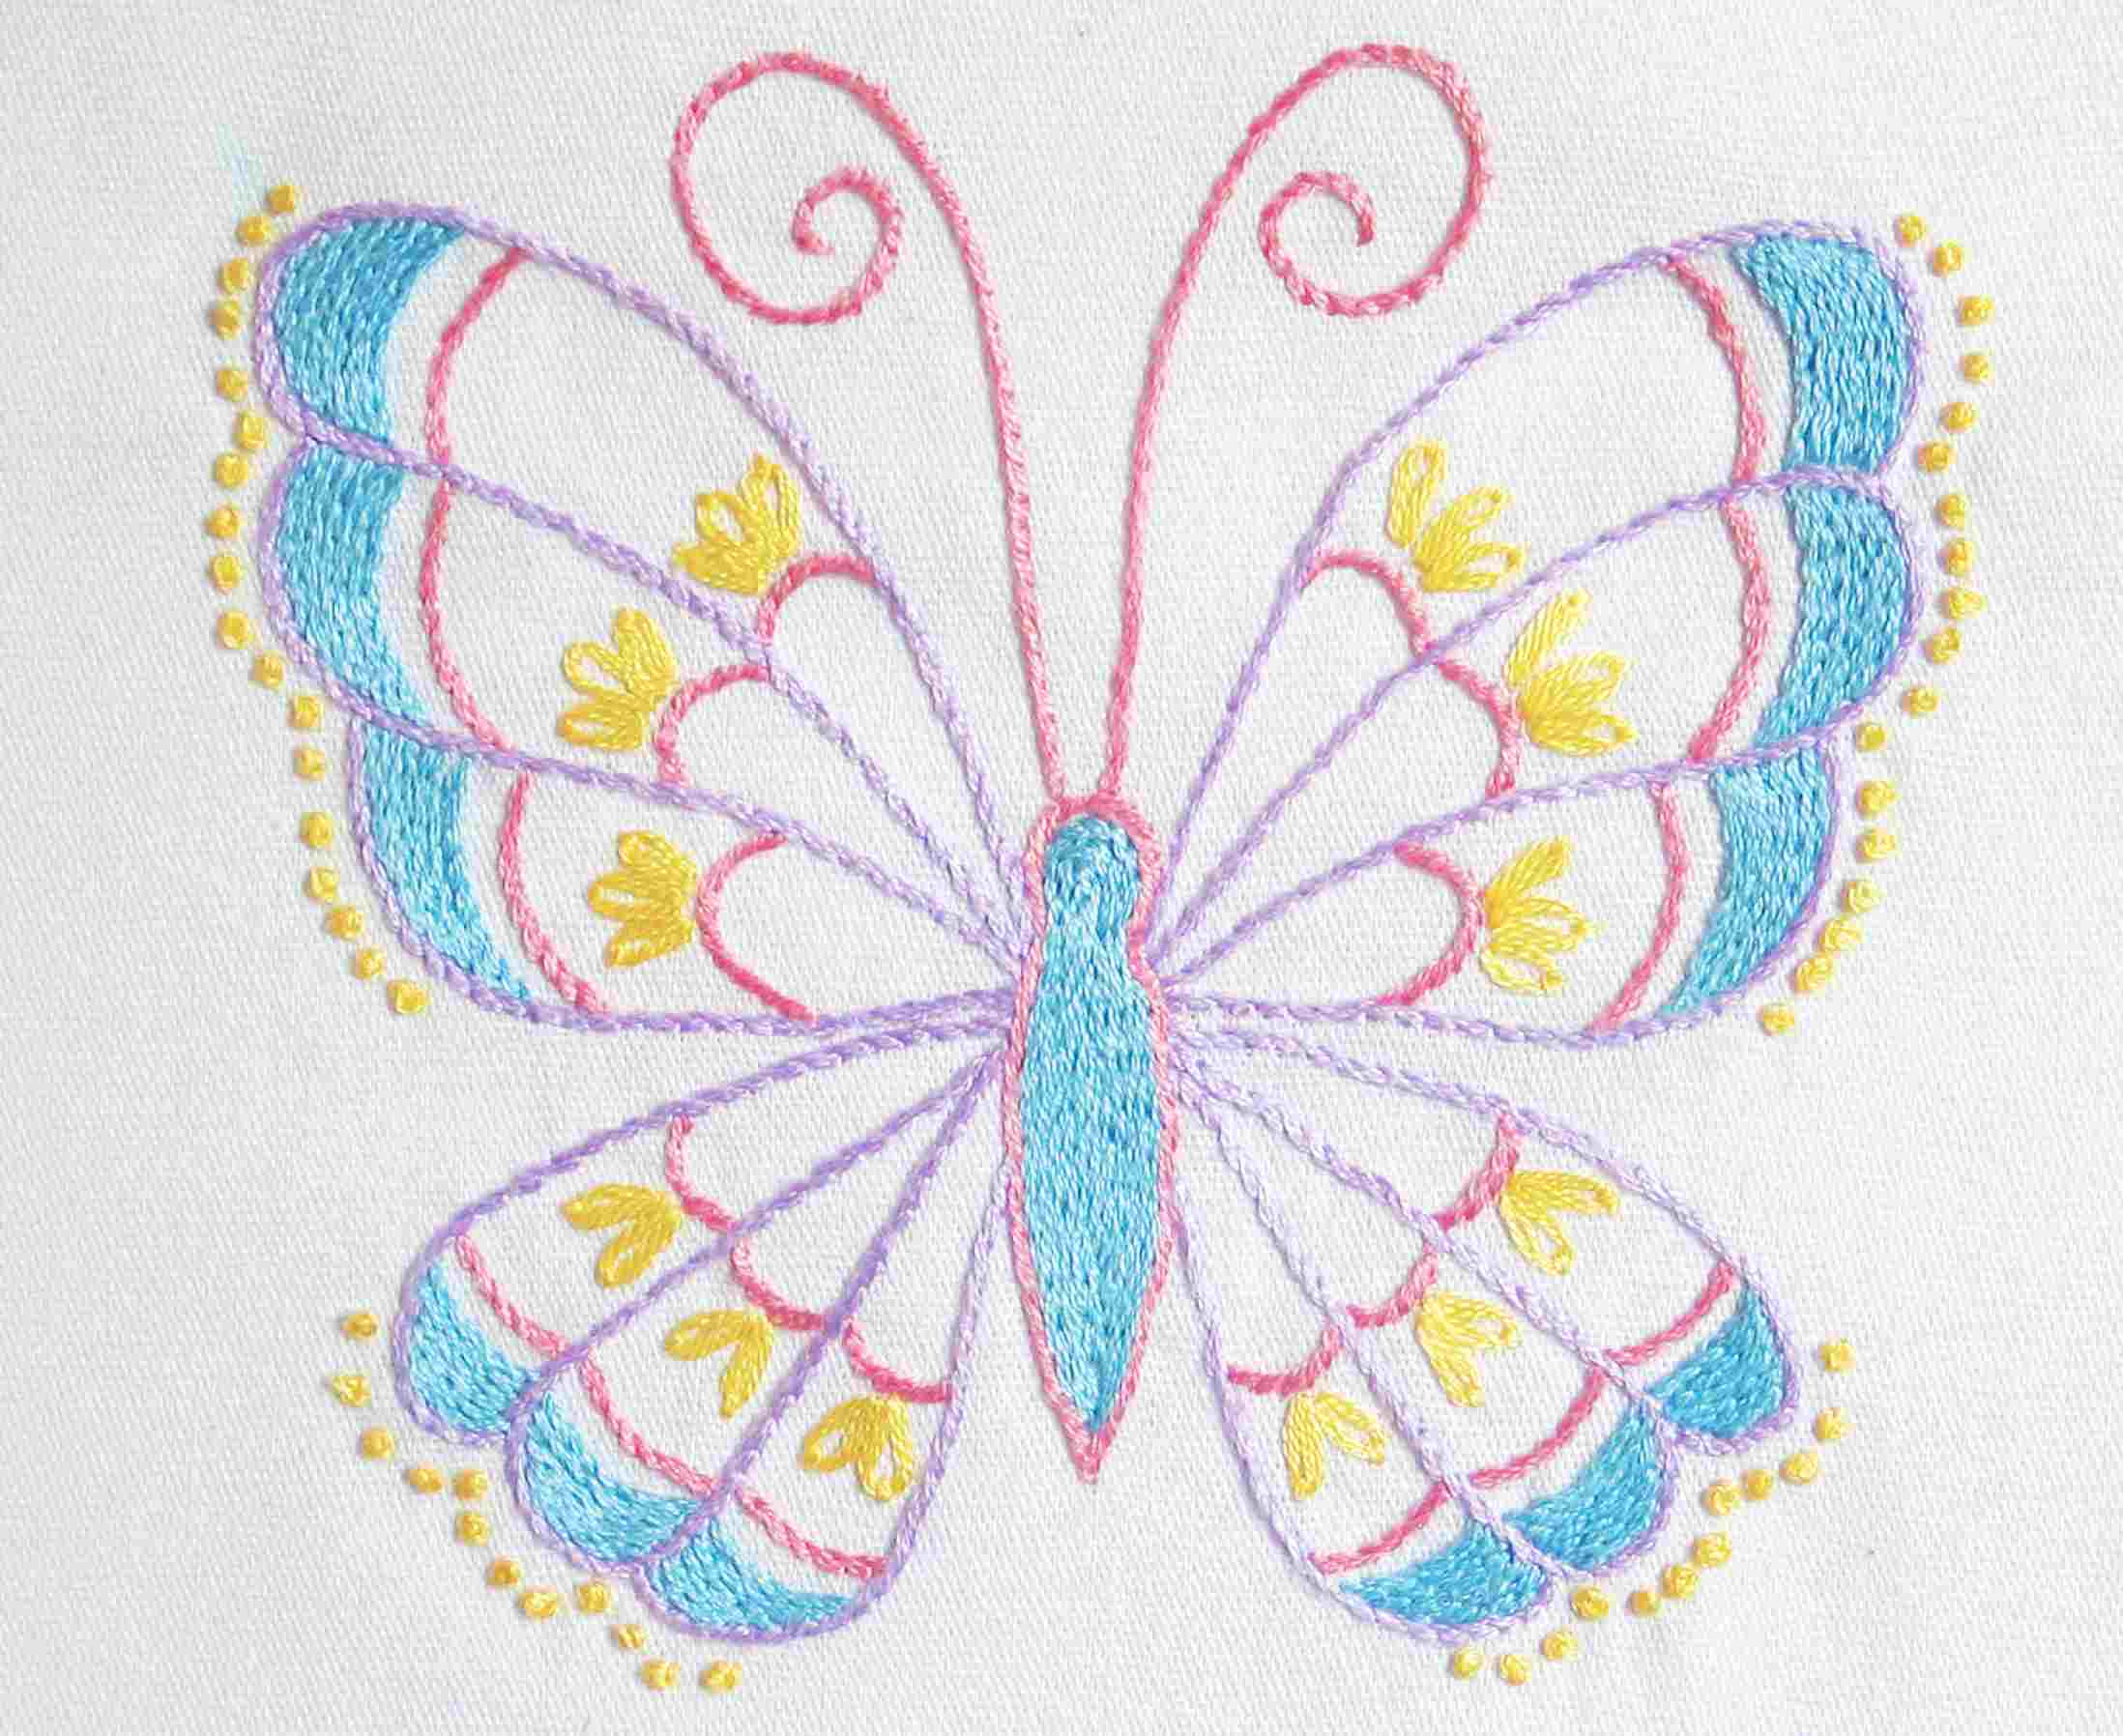 Embroidery Designs Patterns Our Top 25 Free Embroidery Designs